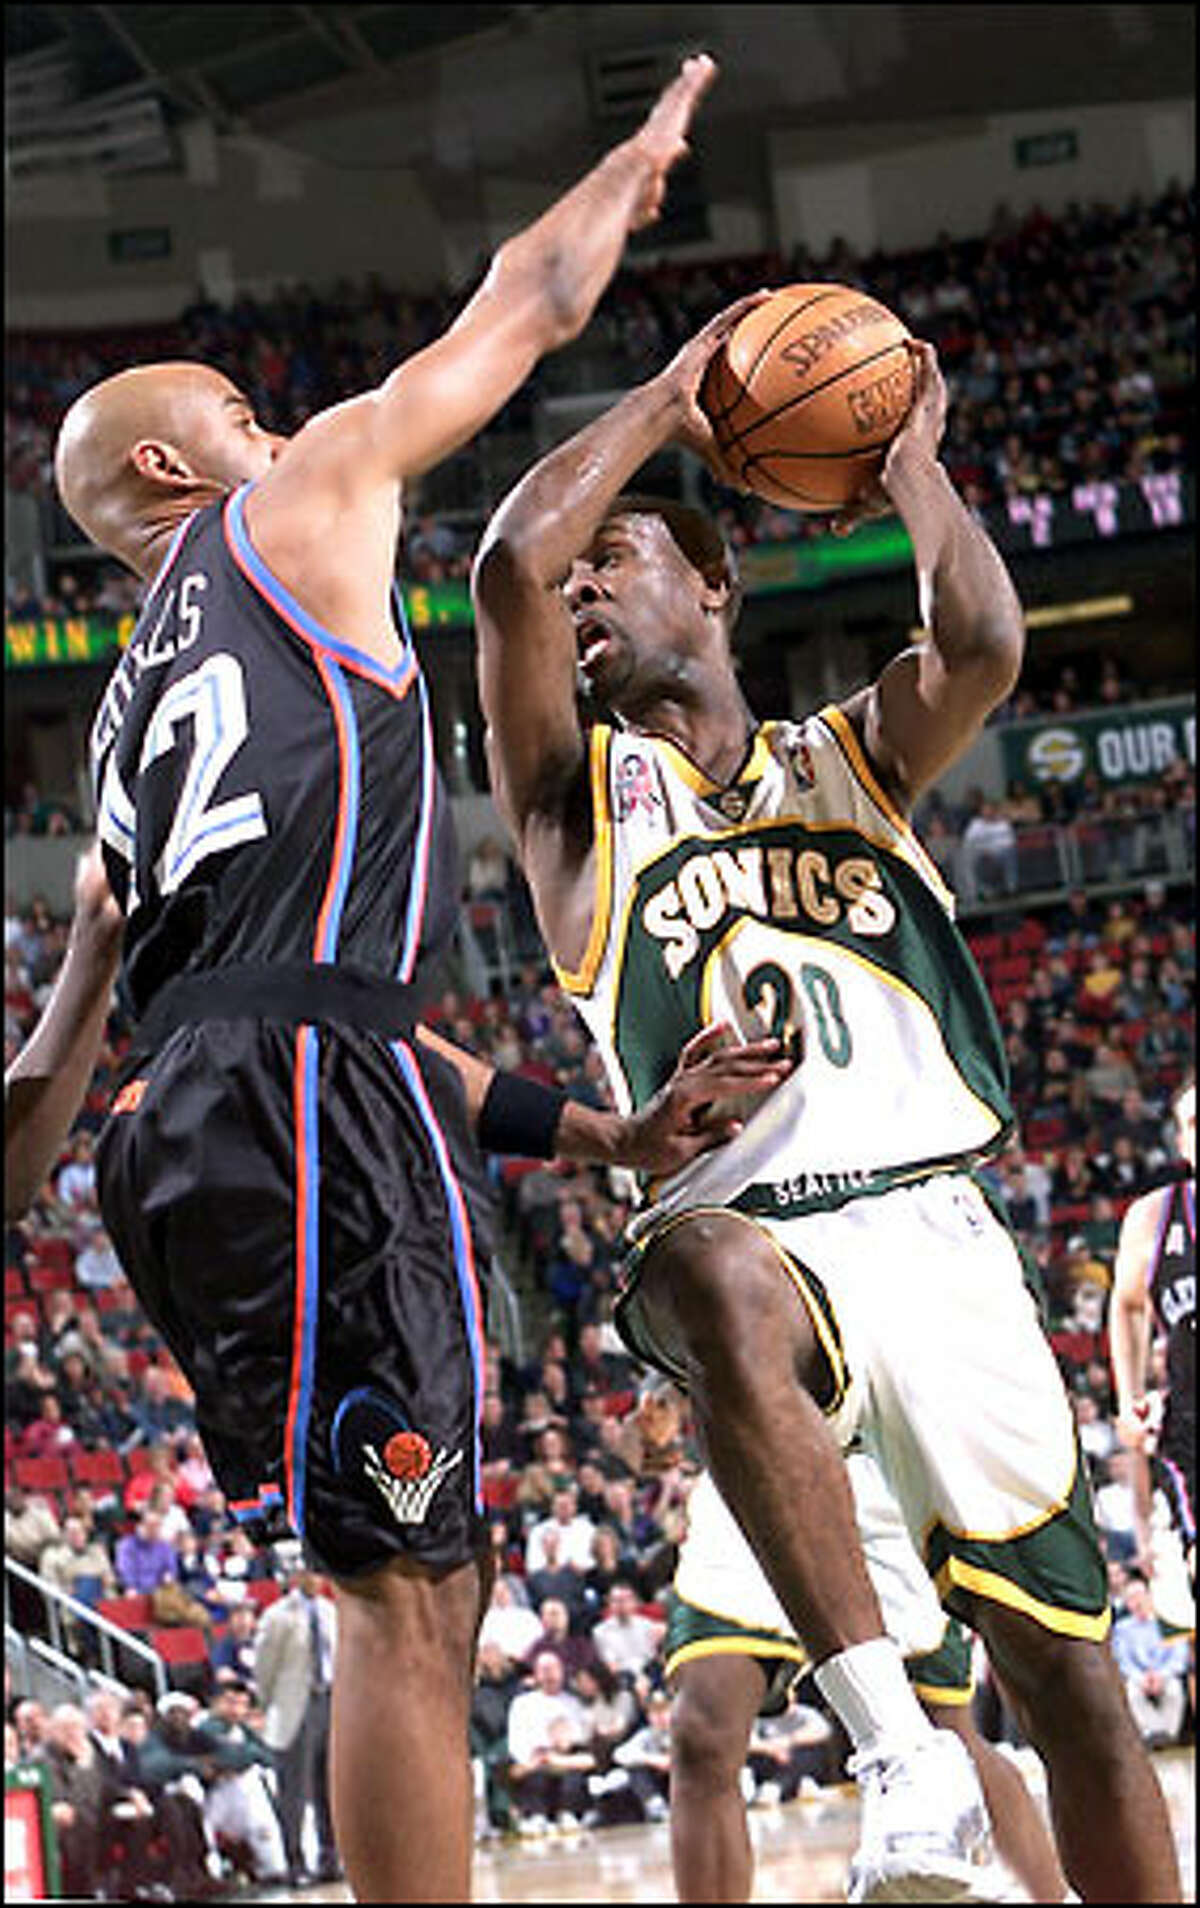 Gary Payton drives on Bimbo Coles. Payton had 24 points as the Sonics defeated Cleveland for the 13th consecutive time.